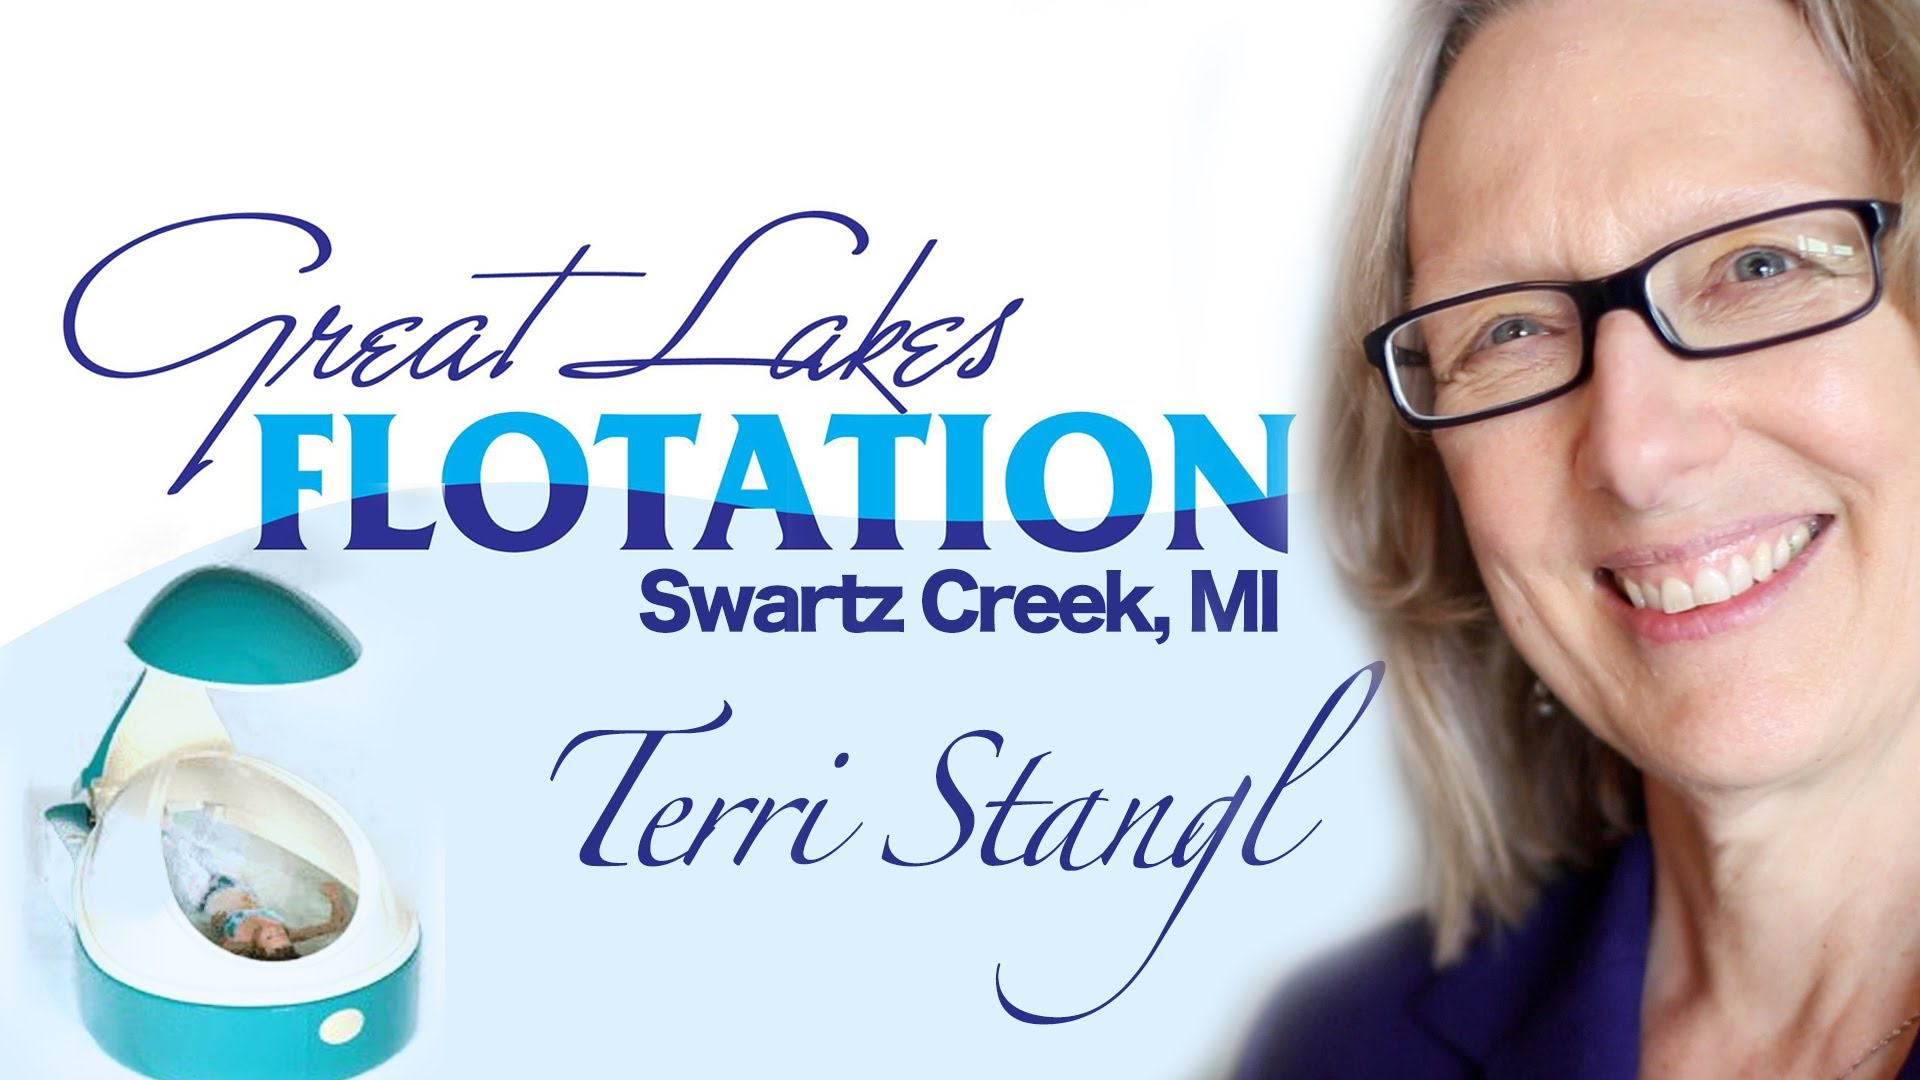 Terri Stangle | Great Lakes Flotation